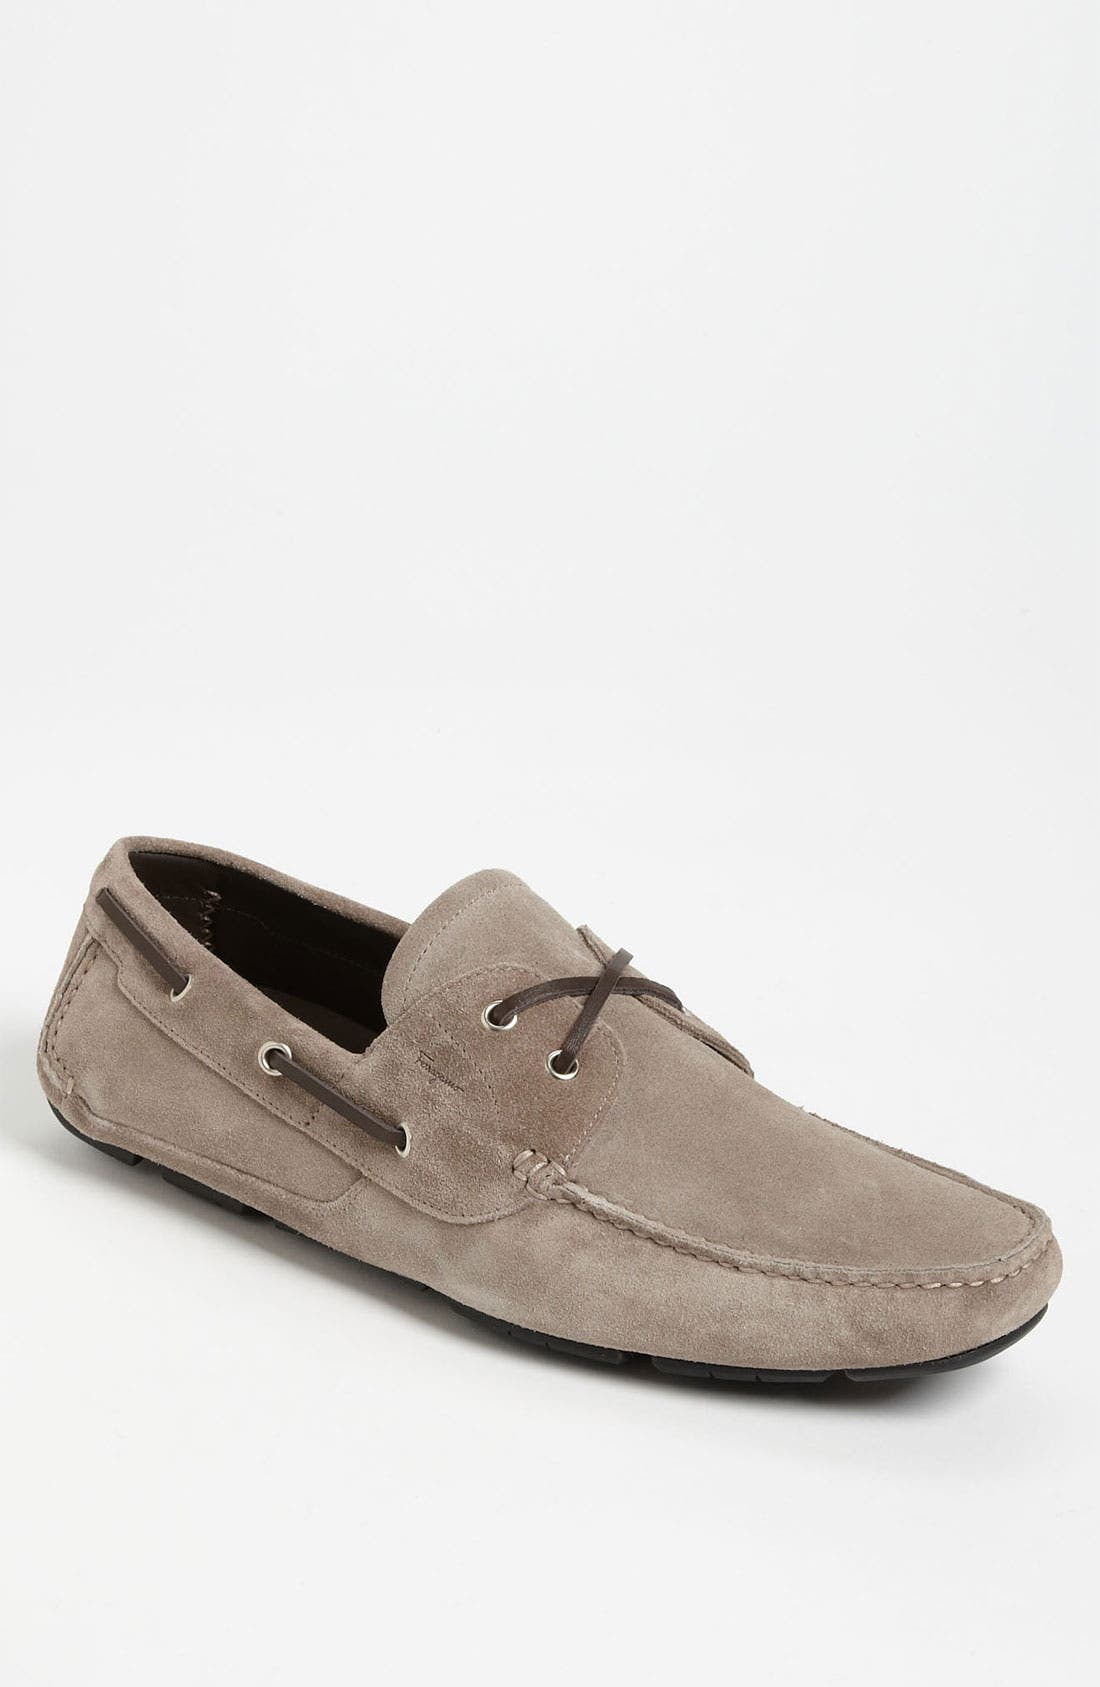 Main Image - Salvatore Ferragamo 'Anthony' Suede Driving Shoe